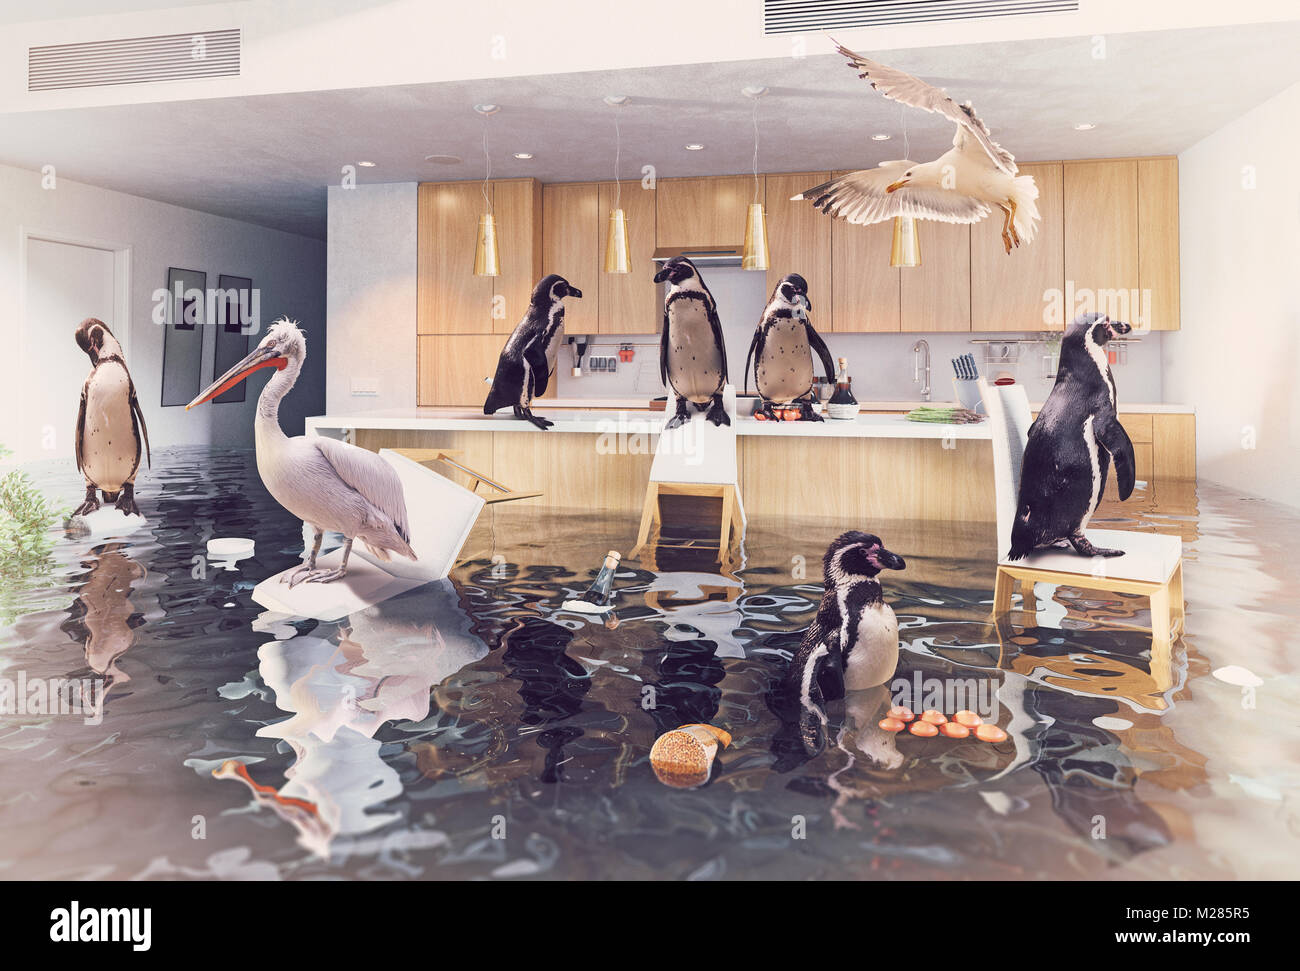 ocean birds in the flooding kitchen interior. Creative media mixes concept. - Stock Image